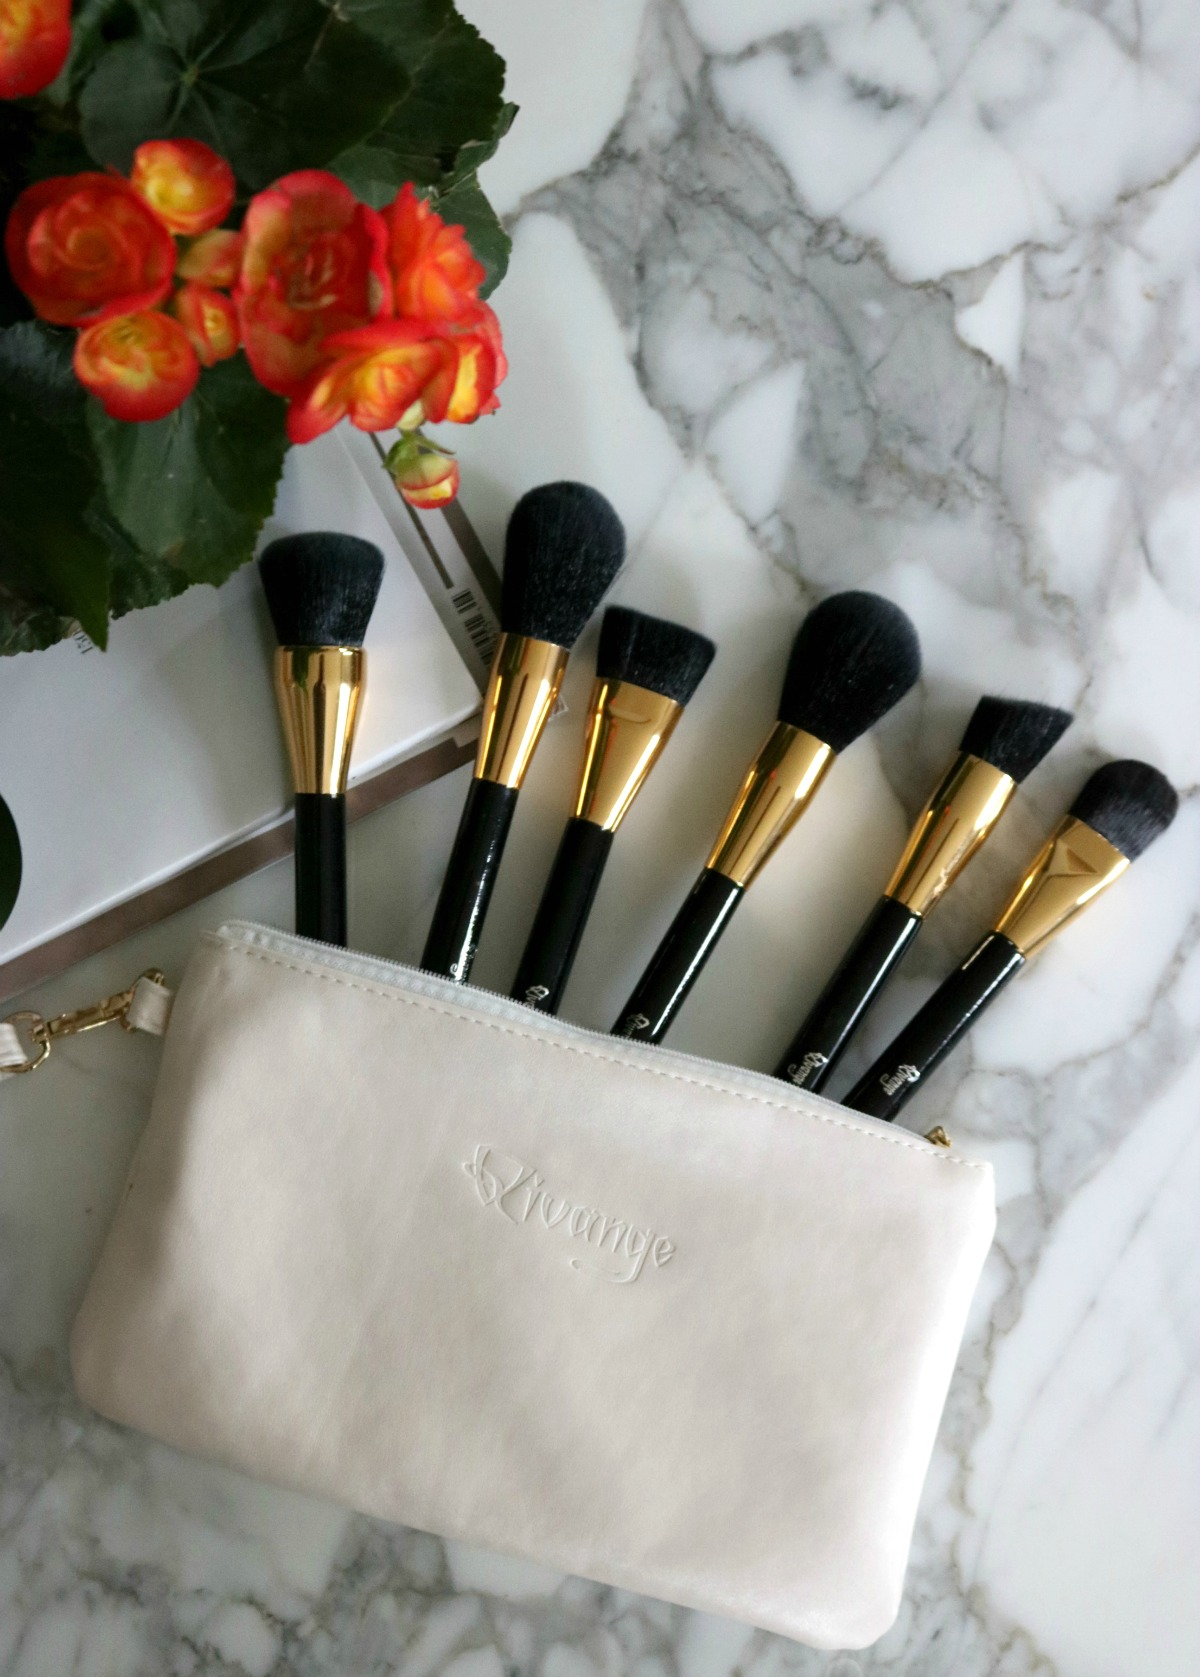 Qivange Makeup Brushes I DreaminLace.com